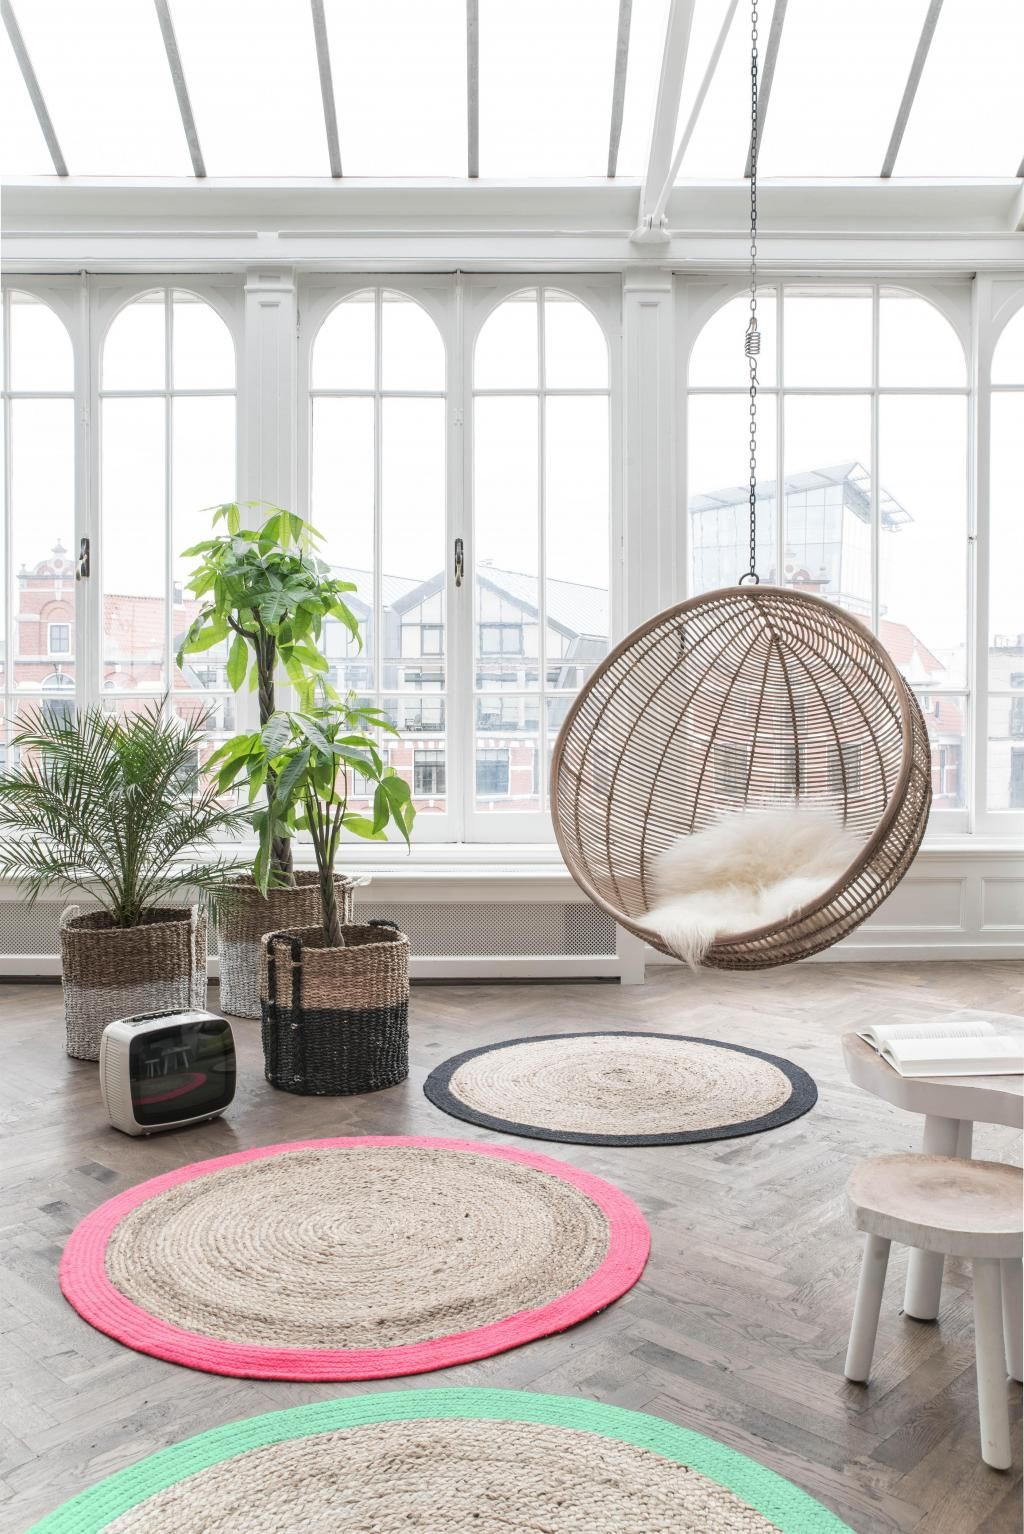 Great Hängesessel Ball   Naturell   Rattan   HK Living Design